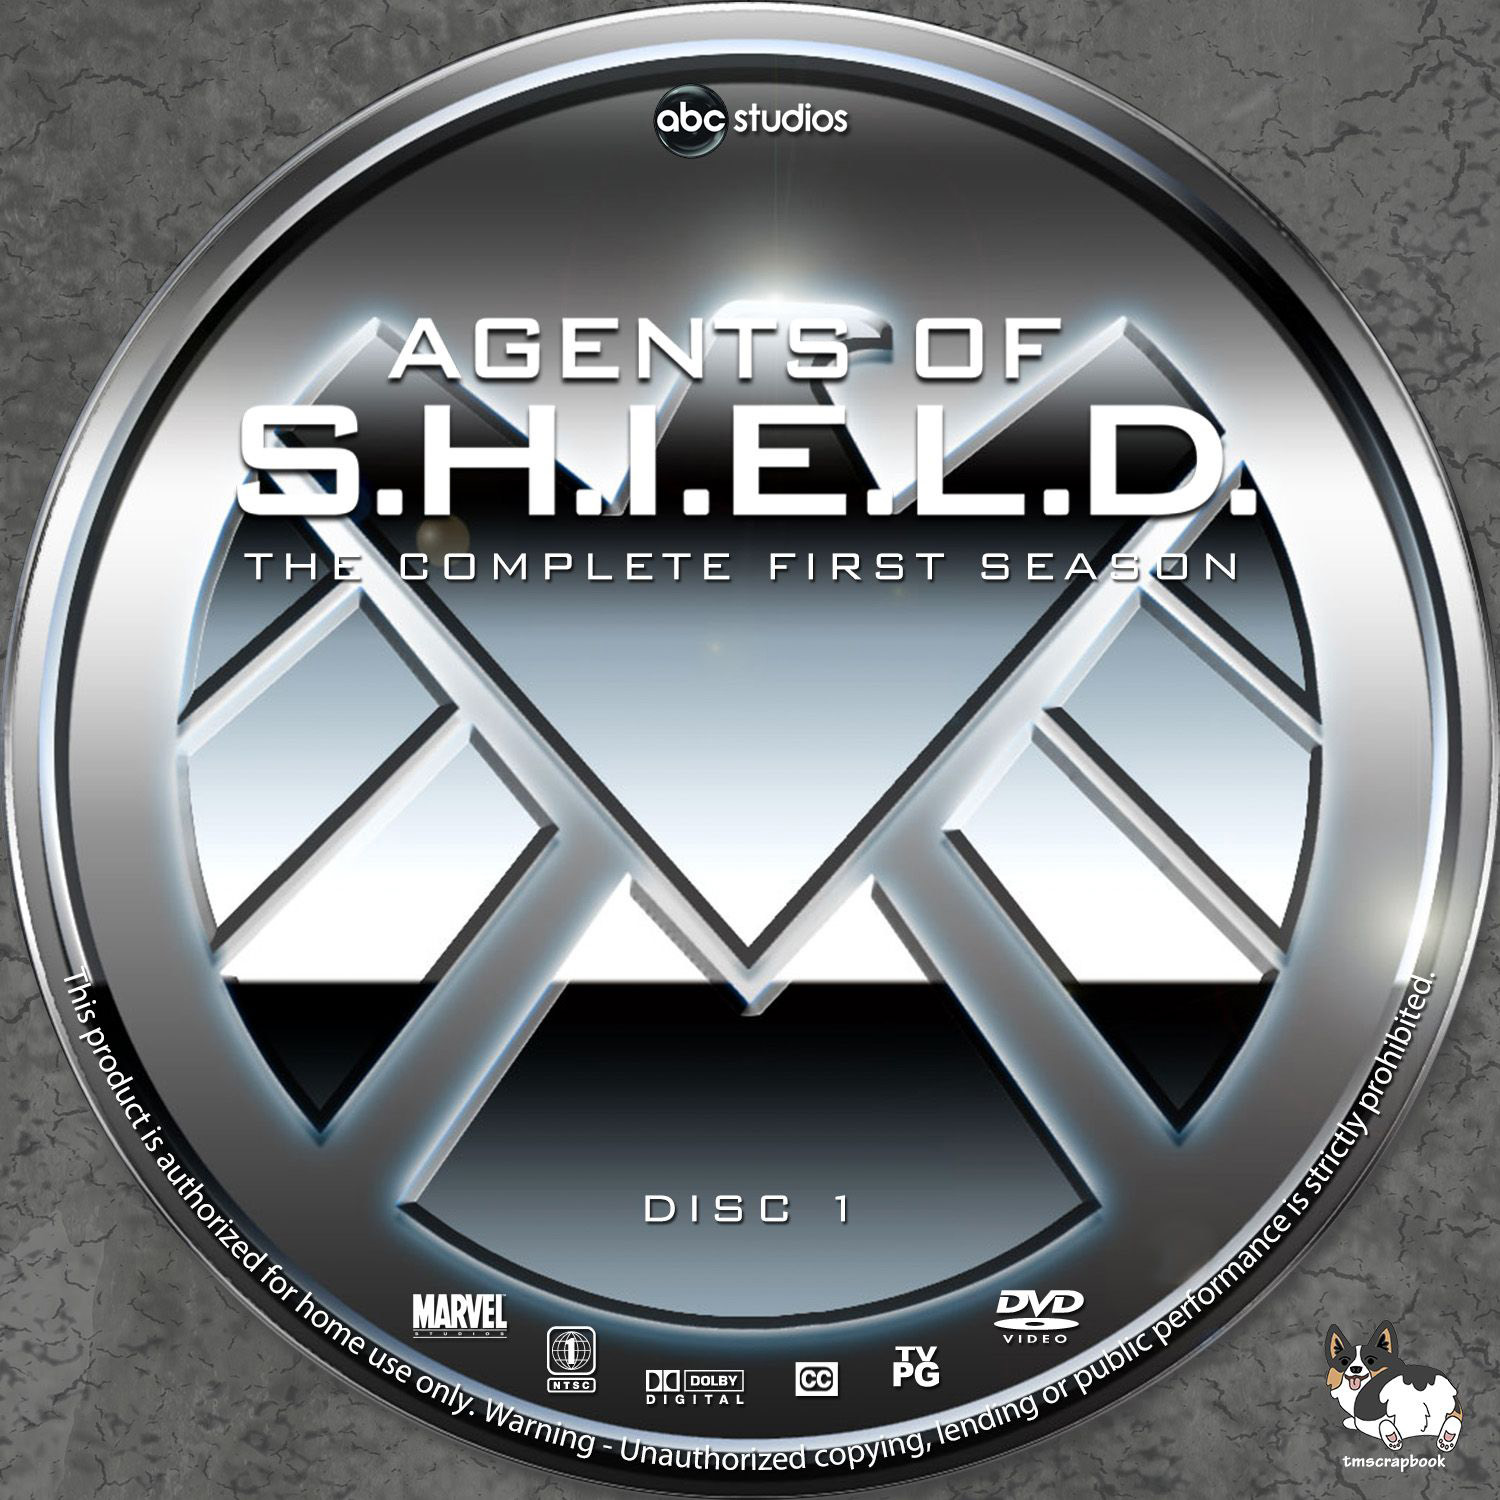 Agents Of Shield Season 1 DVD Labels